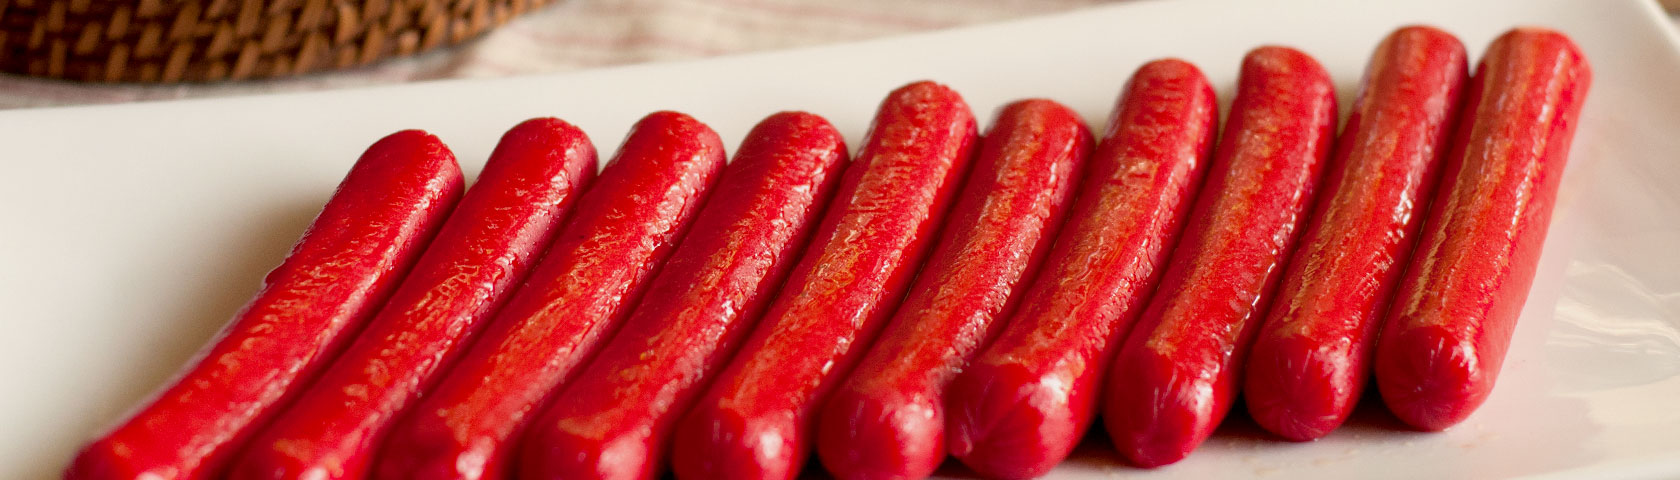 hotdogs-headersbeefpork